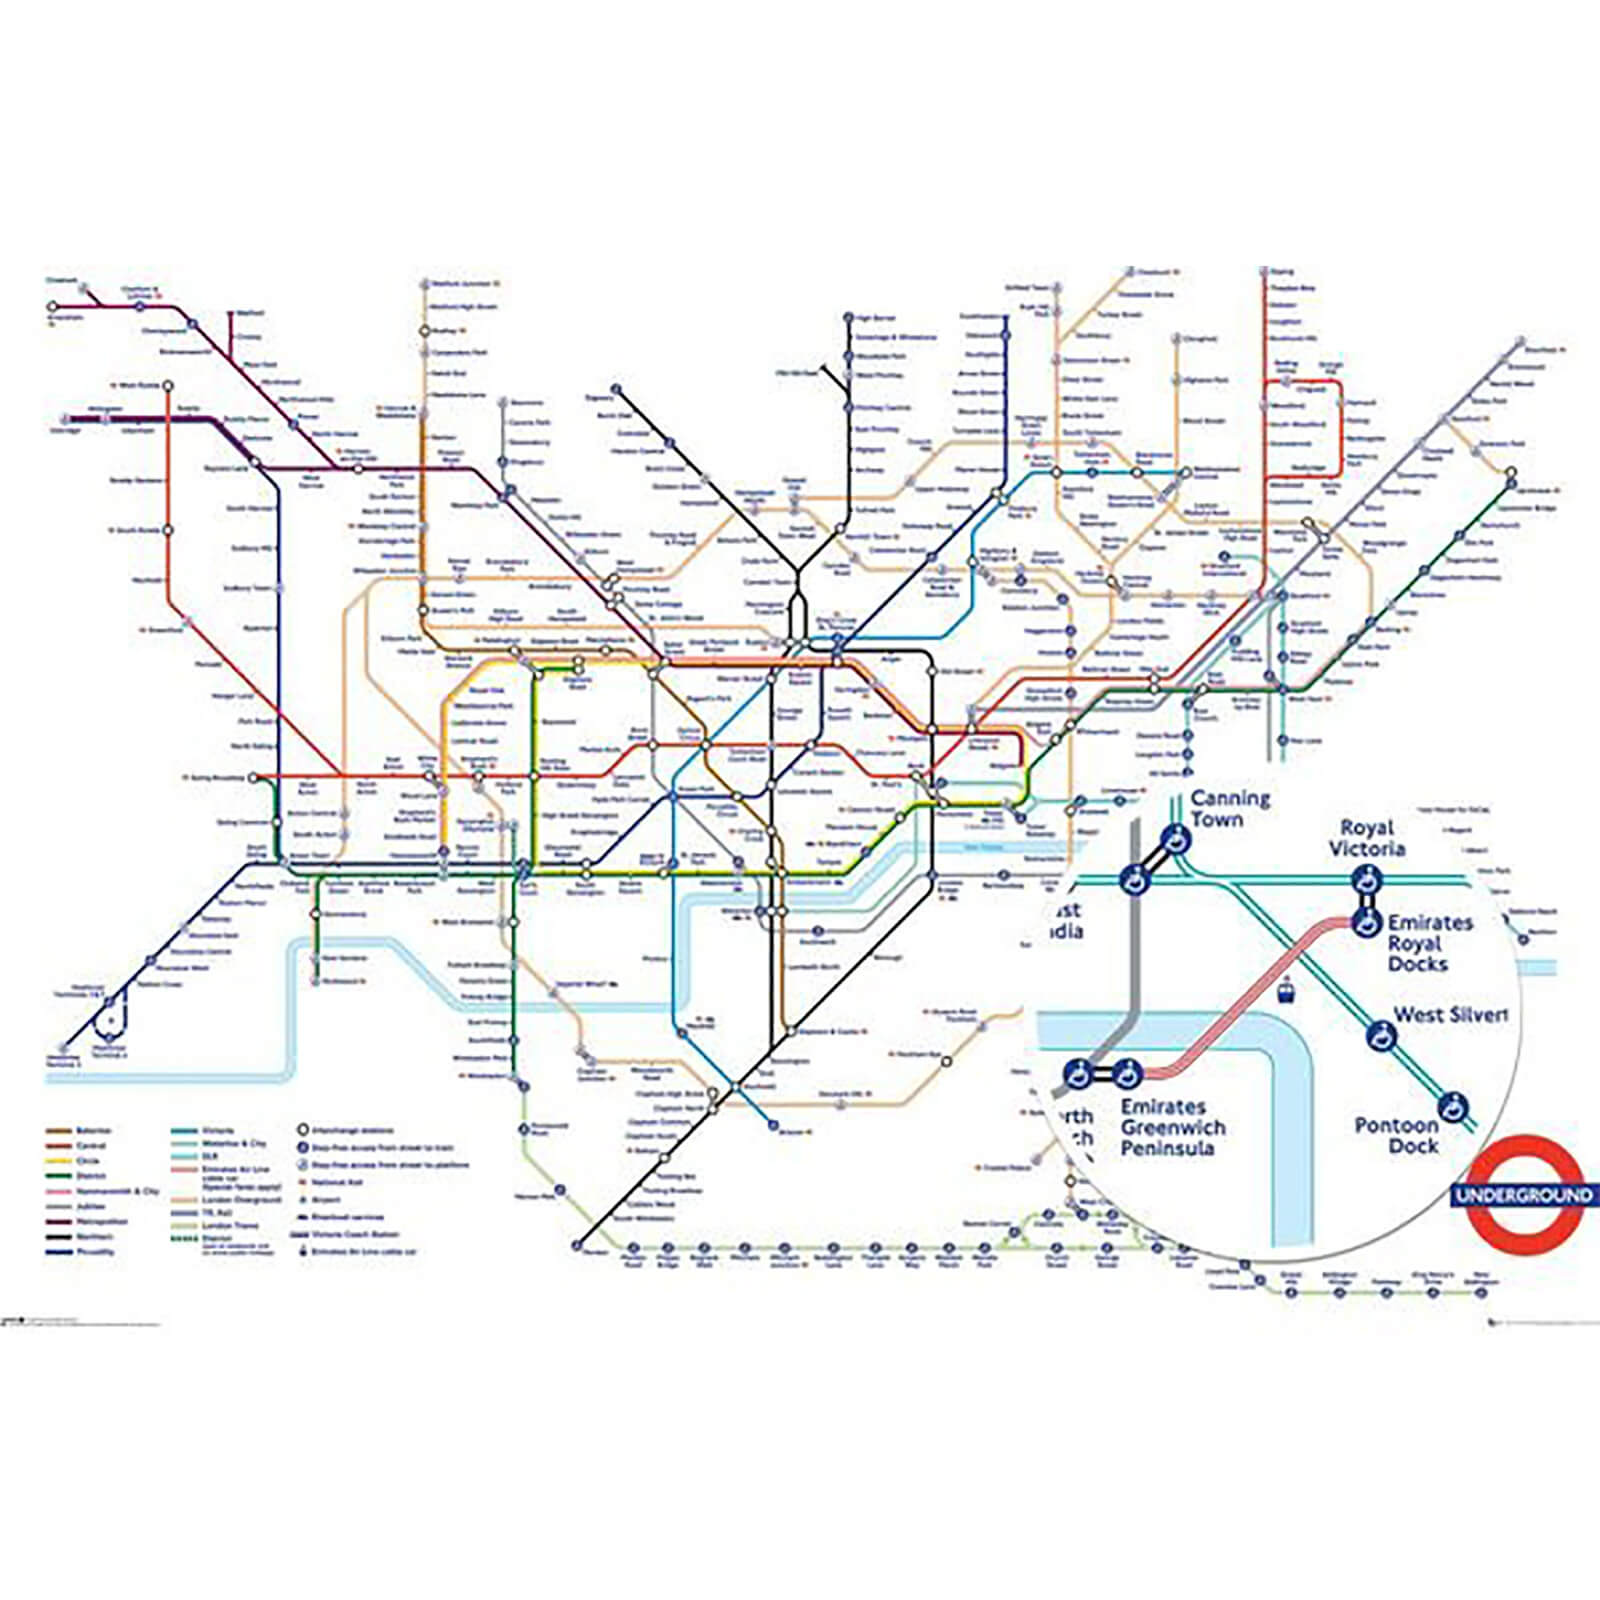 Transport For London Map.Transport For London Underground Map Maxi Poster 61x91 5cm